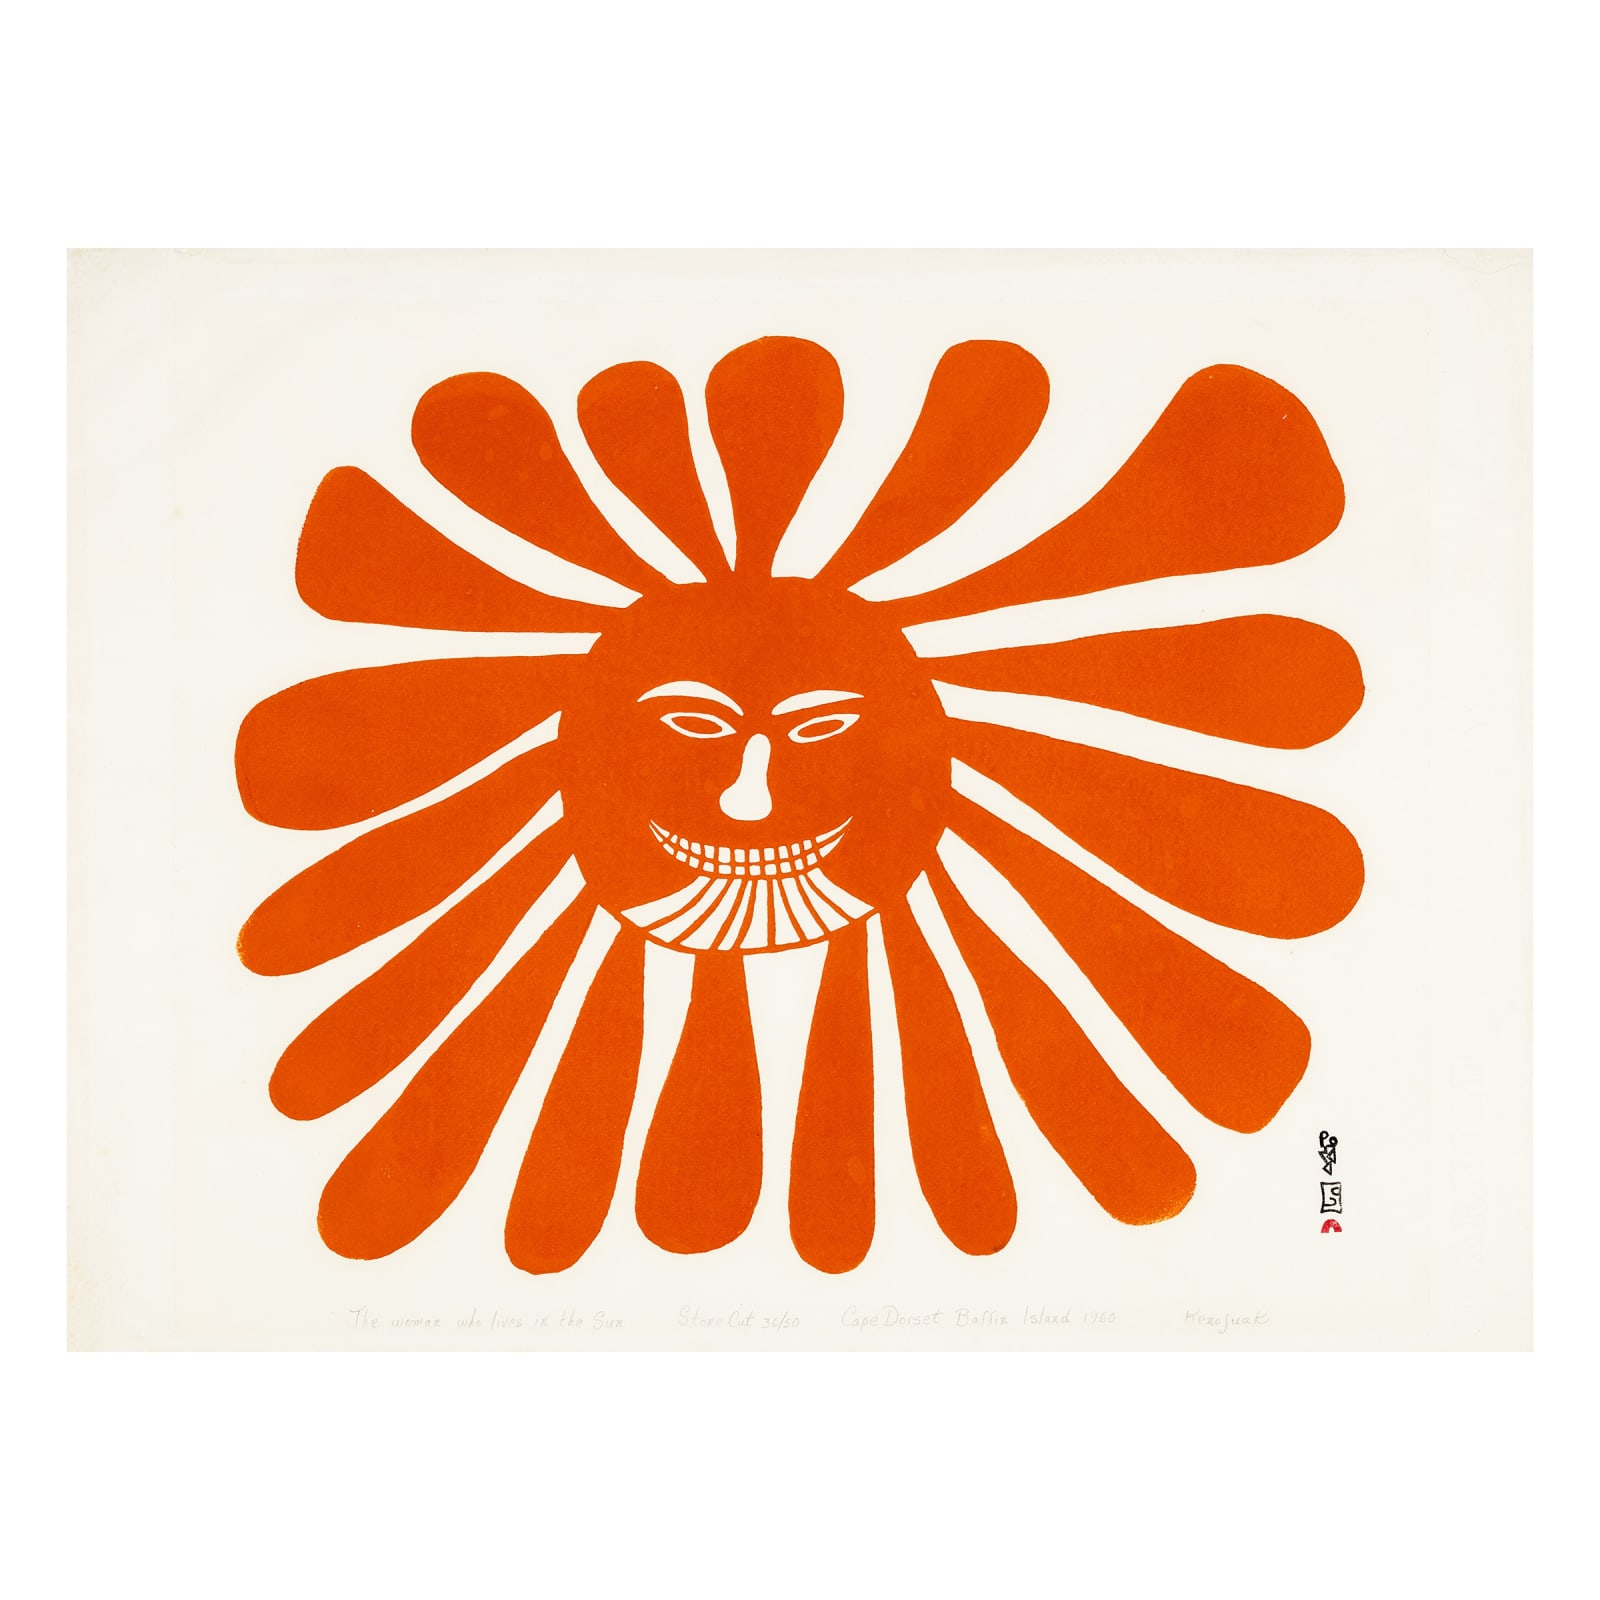 KENOJUAK ASHEVAK, C.C., R.C.A (1927-2013) KINNGAIT (CAPE DORSET)  The Woman who Lives in the Sun, 1960  ESTIMATE: $35,000 — $50,000  PRICE REALIZED: $78,000  A world record price for this print at auction.